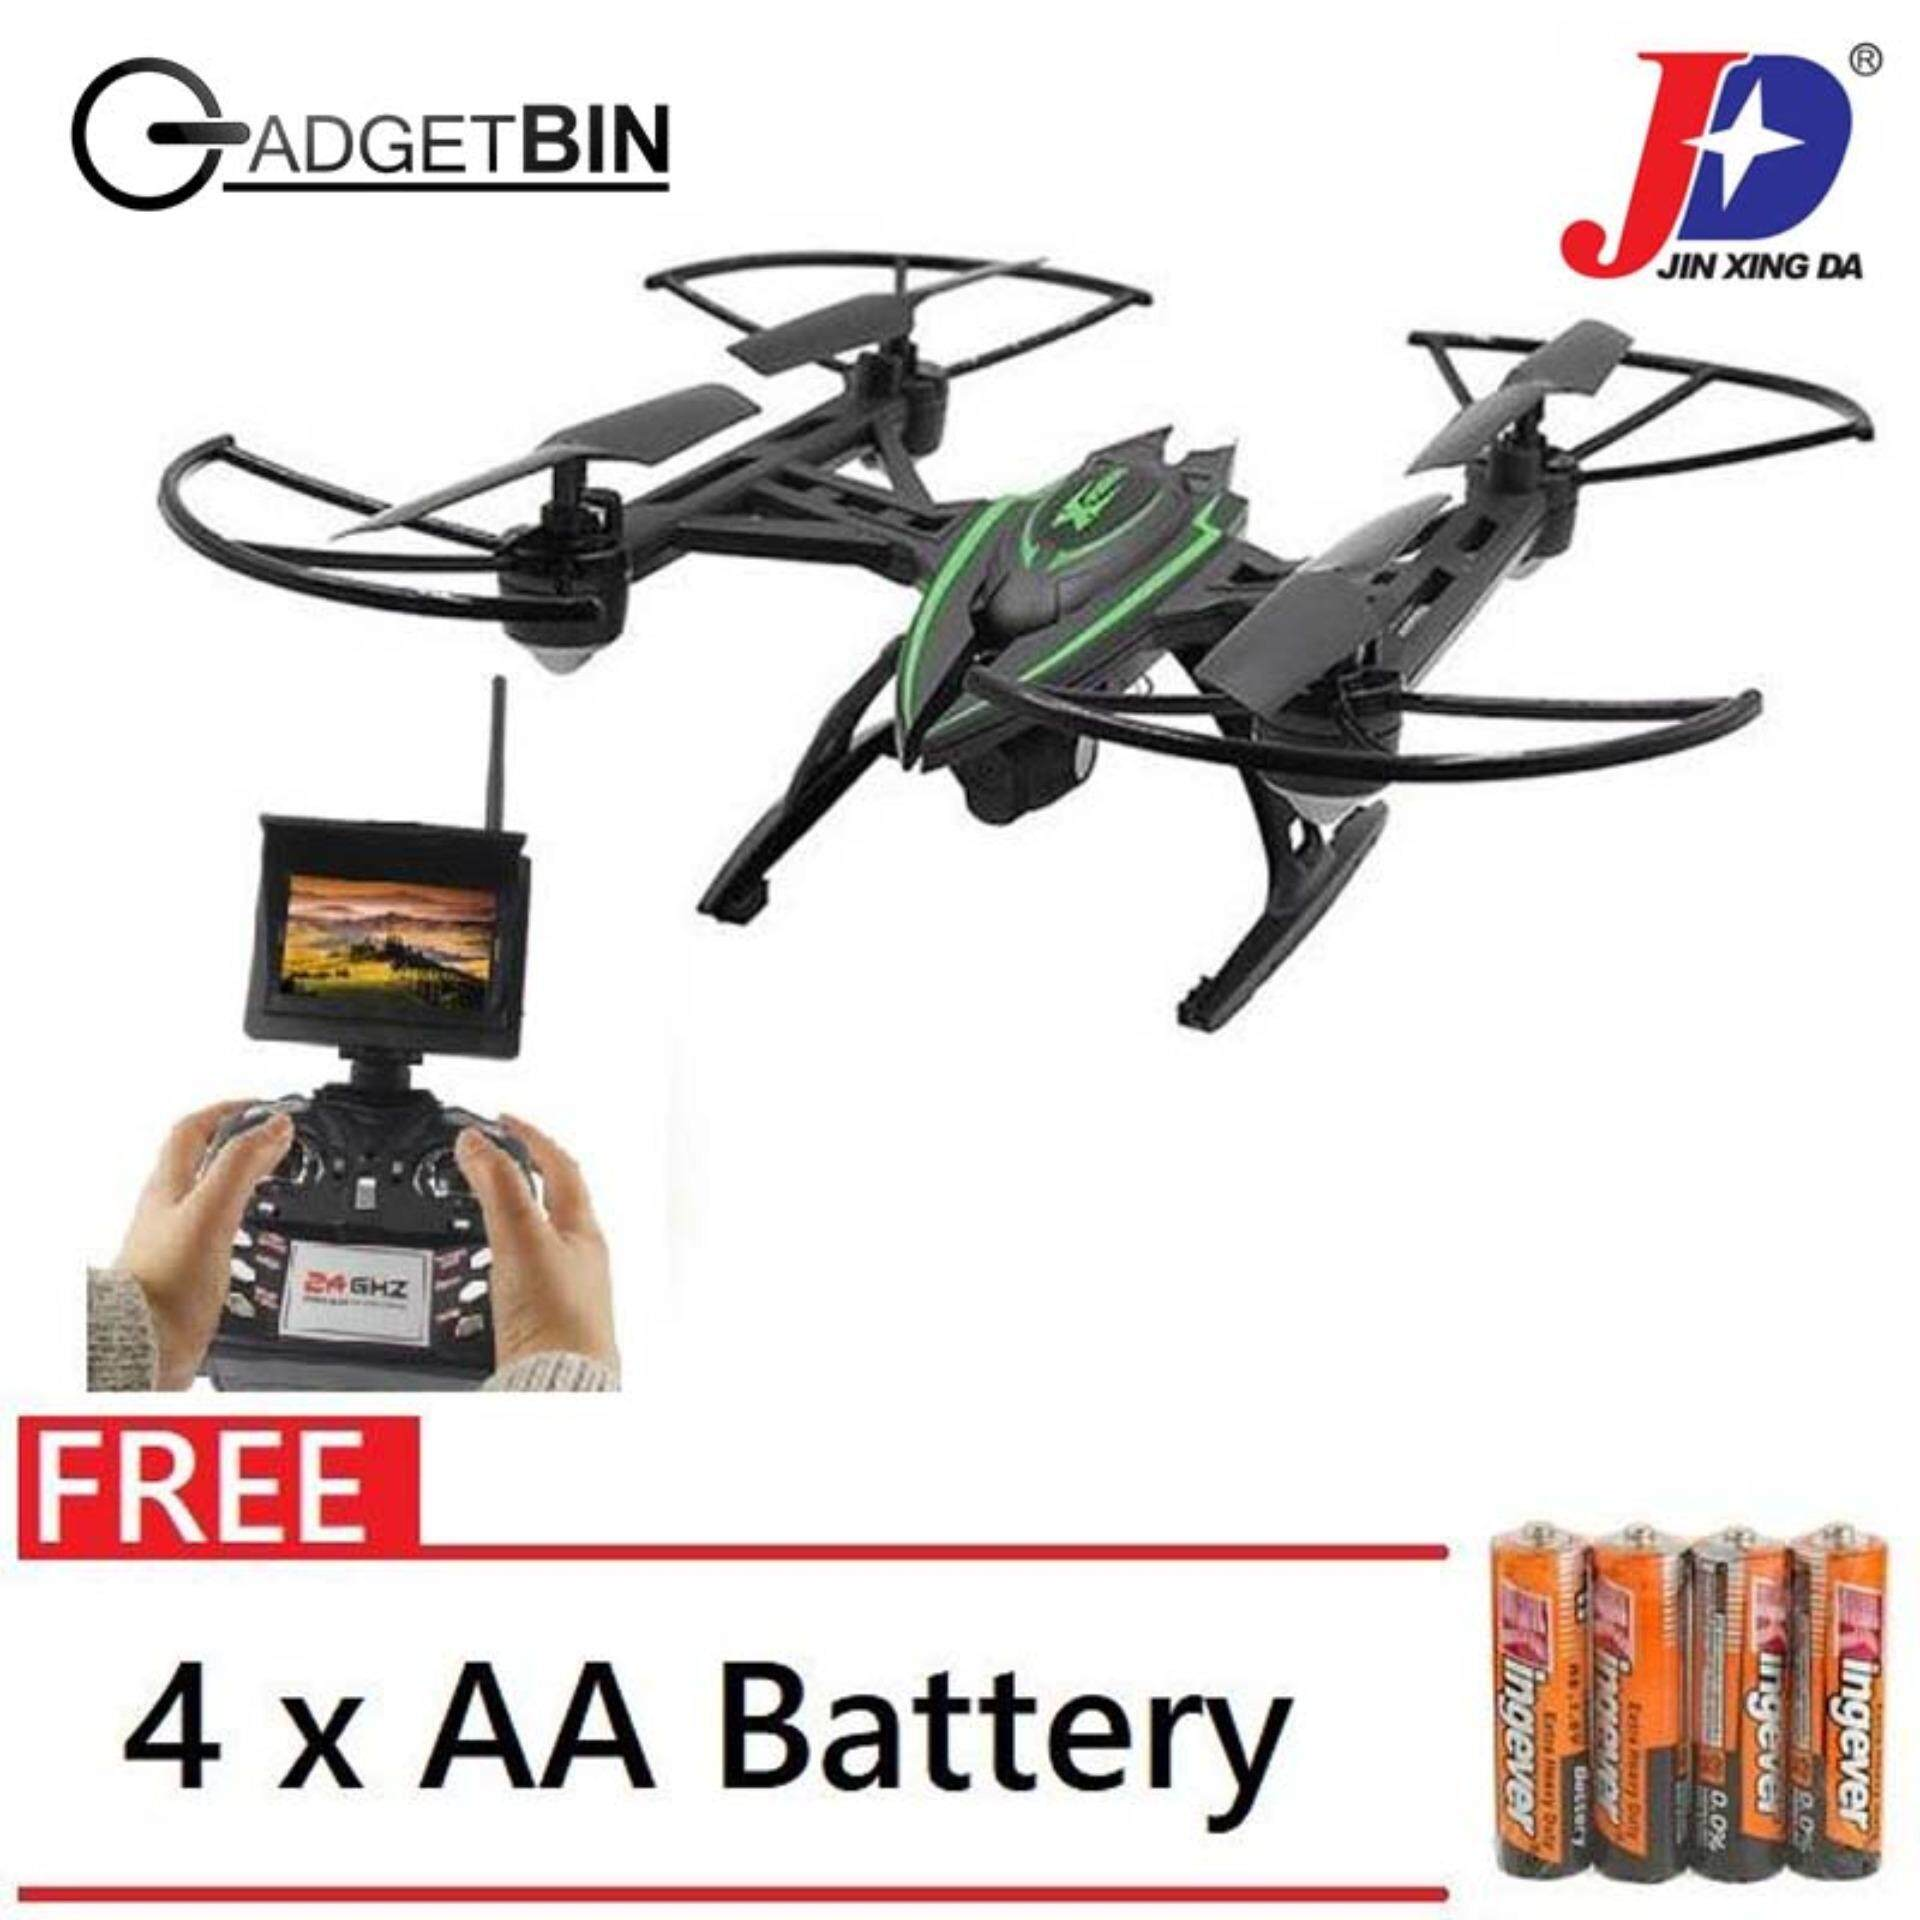 Jxd 509g Rc Quadcopter 5.8g Real-time Fpv 0.92mp Headless Mode With Light Sale Price Toys & Hobbies Other Rc Model Vehicles & Kits